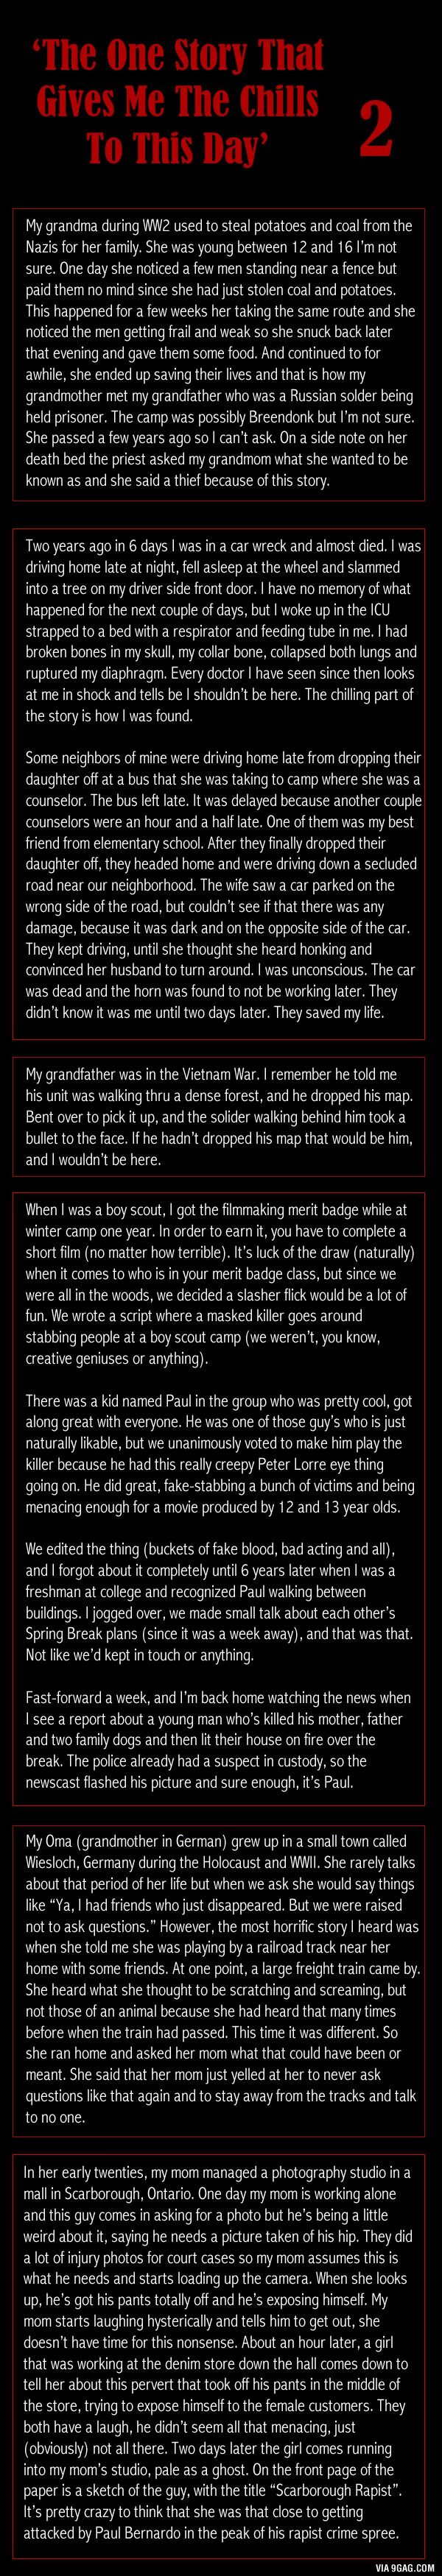 best ideas about scary creepy stories creepy the one story that gives me the chills to this day 2